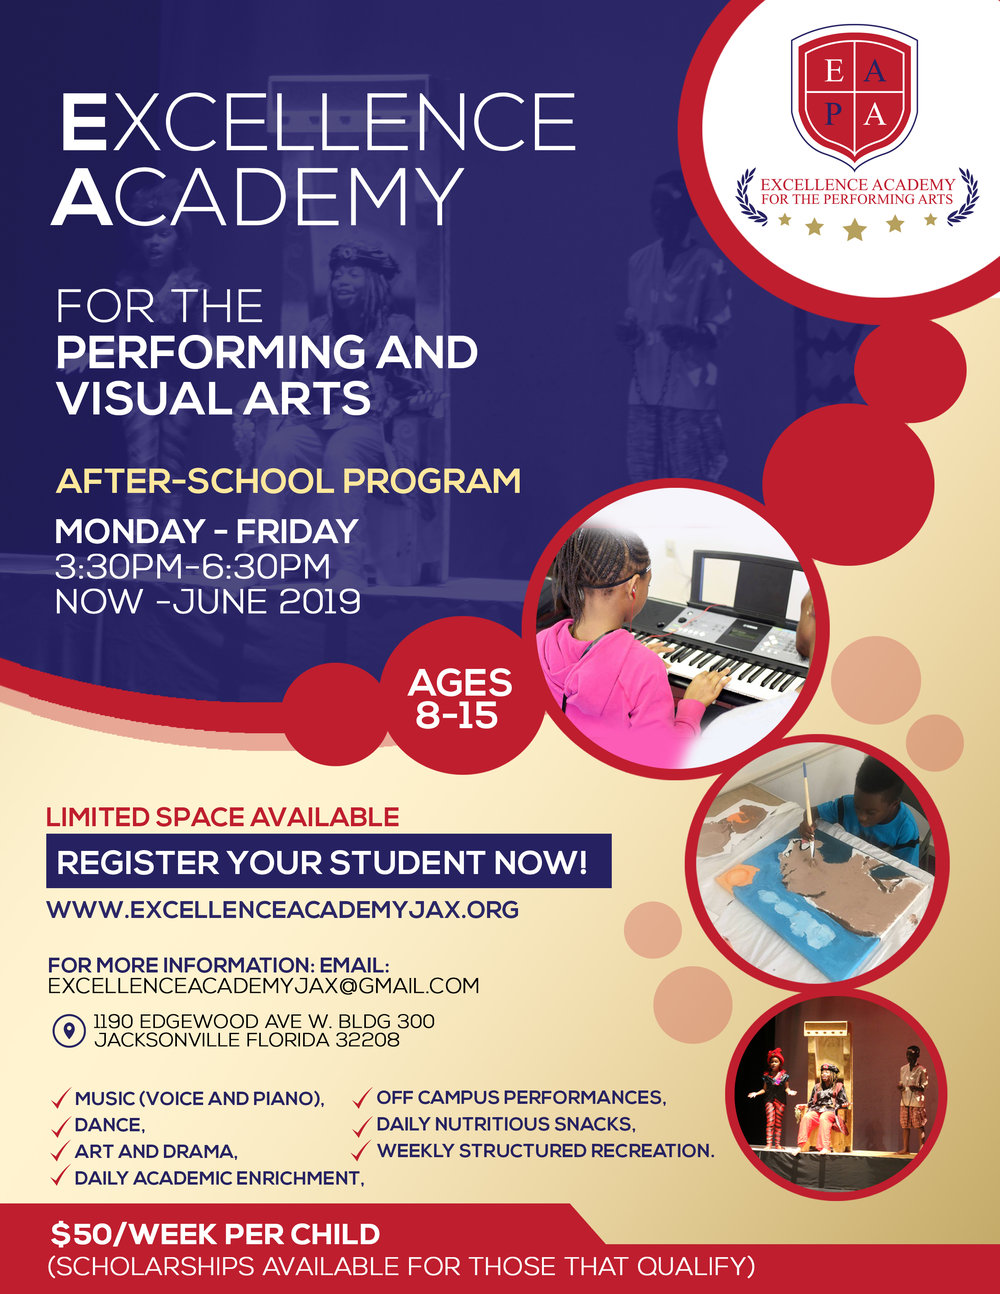 After School Program Excellence Academy For The Performing Arts